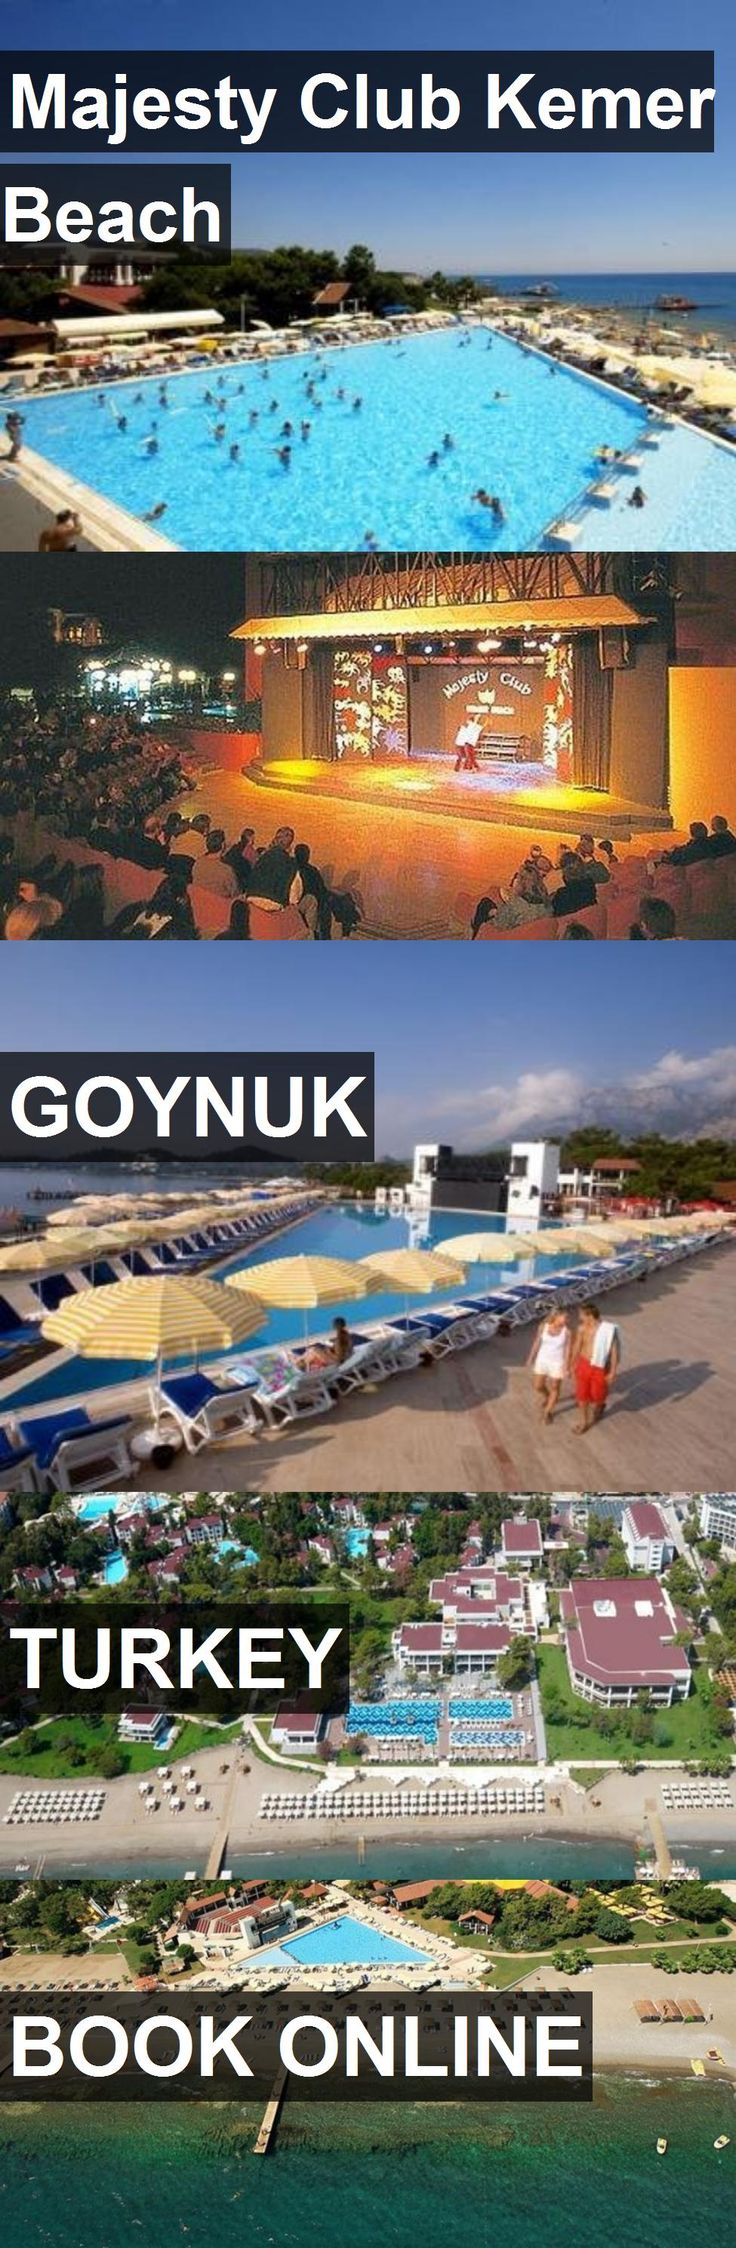 Hotel Majesty Club Kemer Beach in Goynuk, Turkey. For more information, photos, reviews and best prices please follow the link. #Turkey #Goynuk #MajestyClubKemerBeach #hotel #travel #vacation